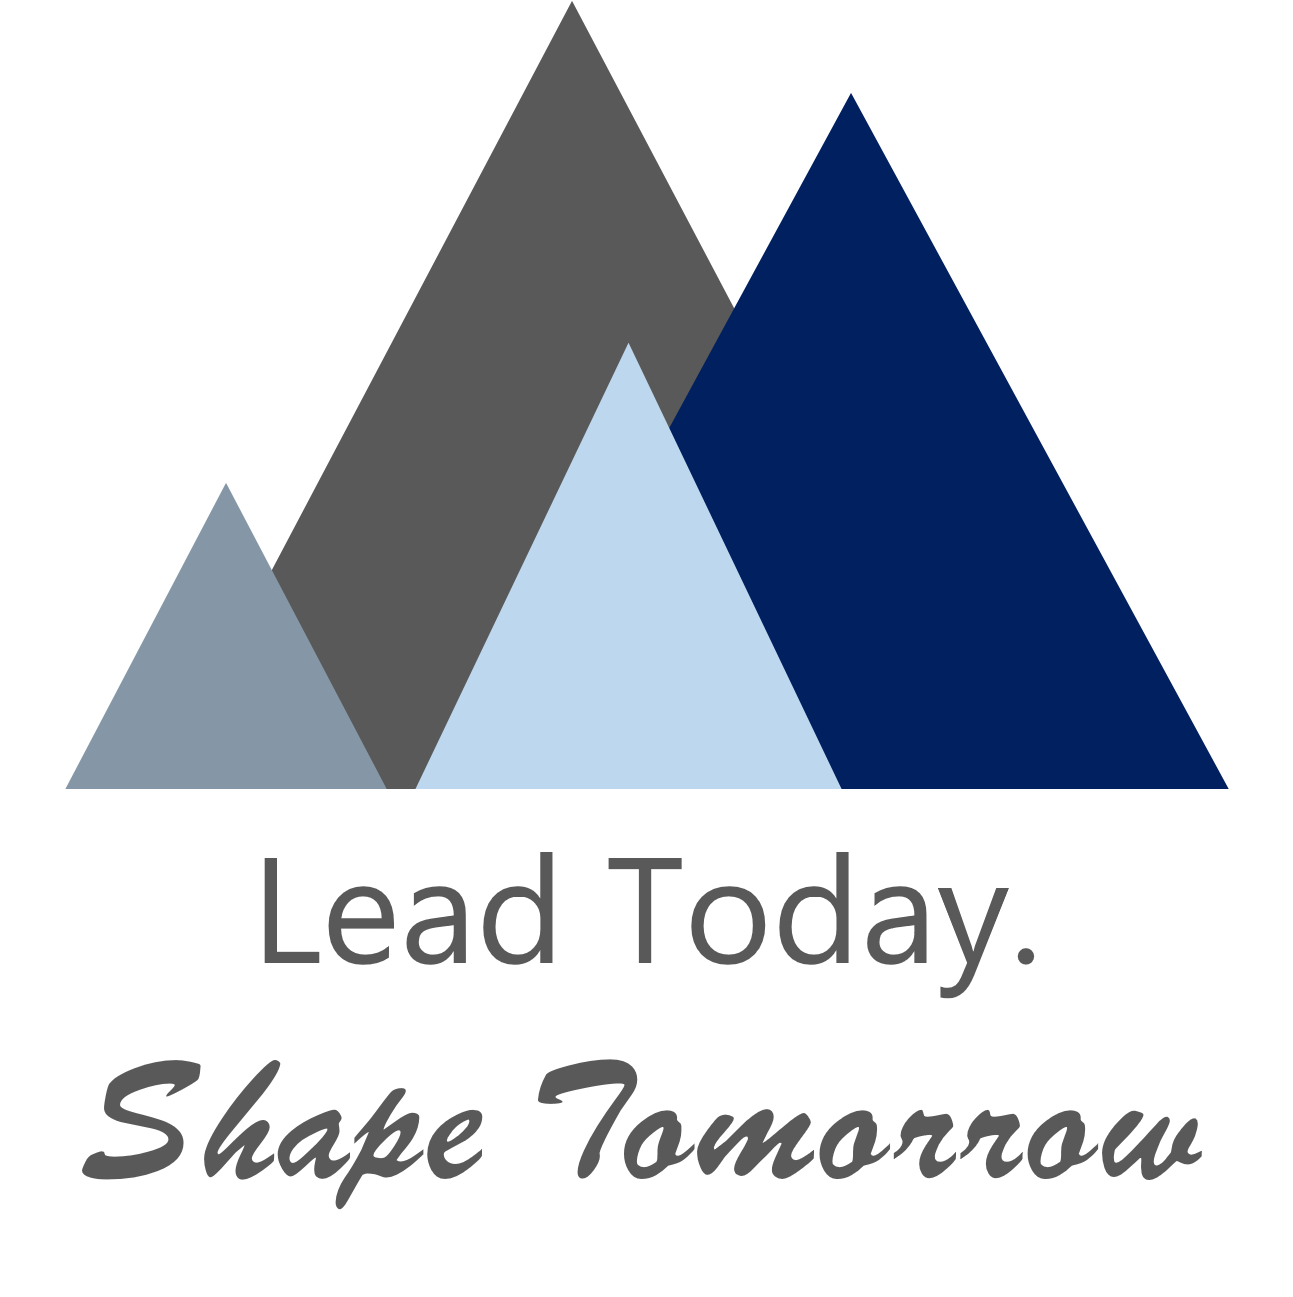 Lead Today. Shape Tomorrow.